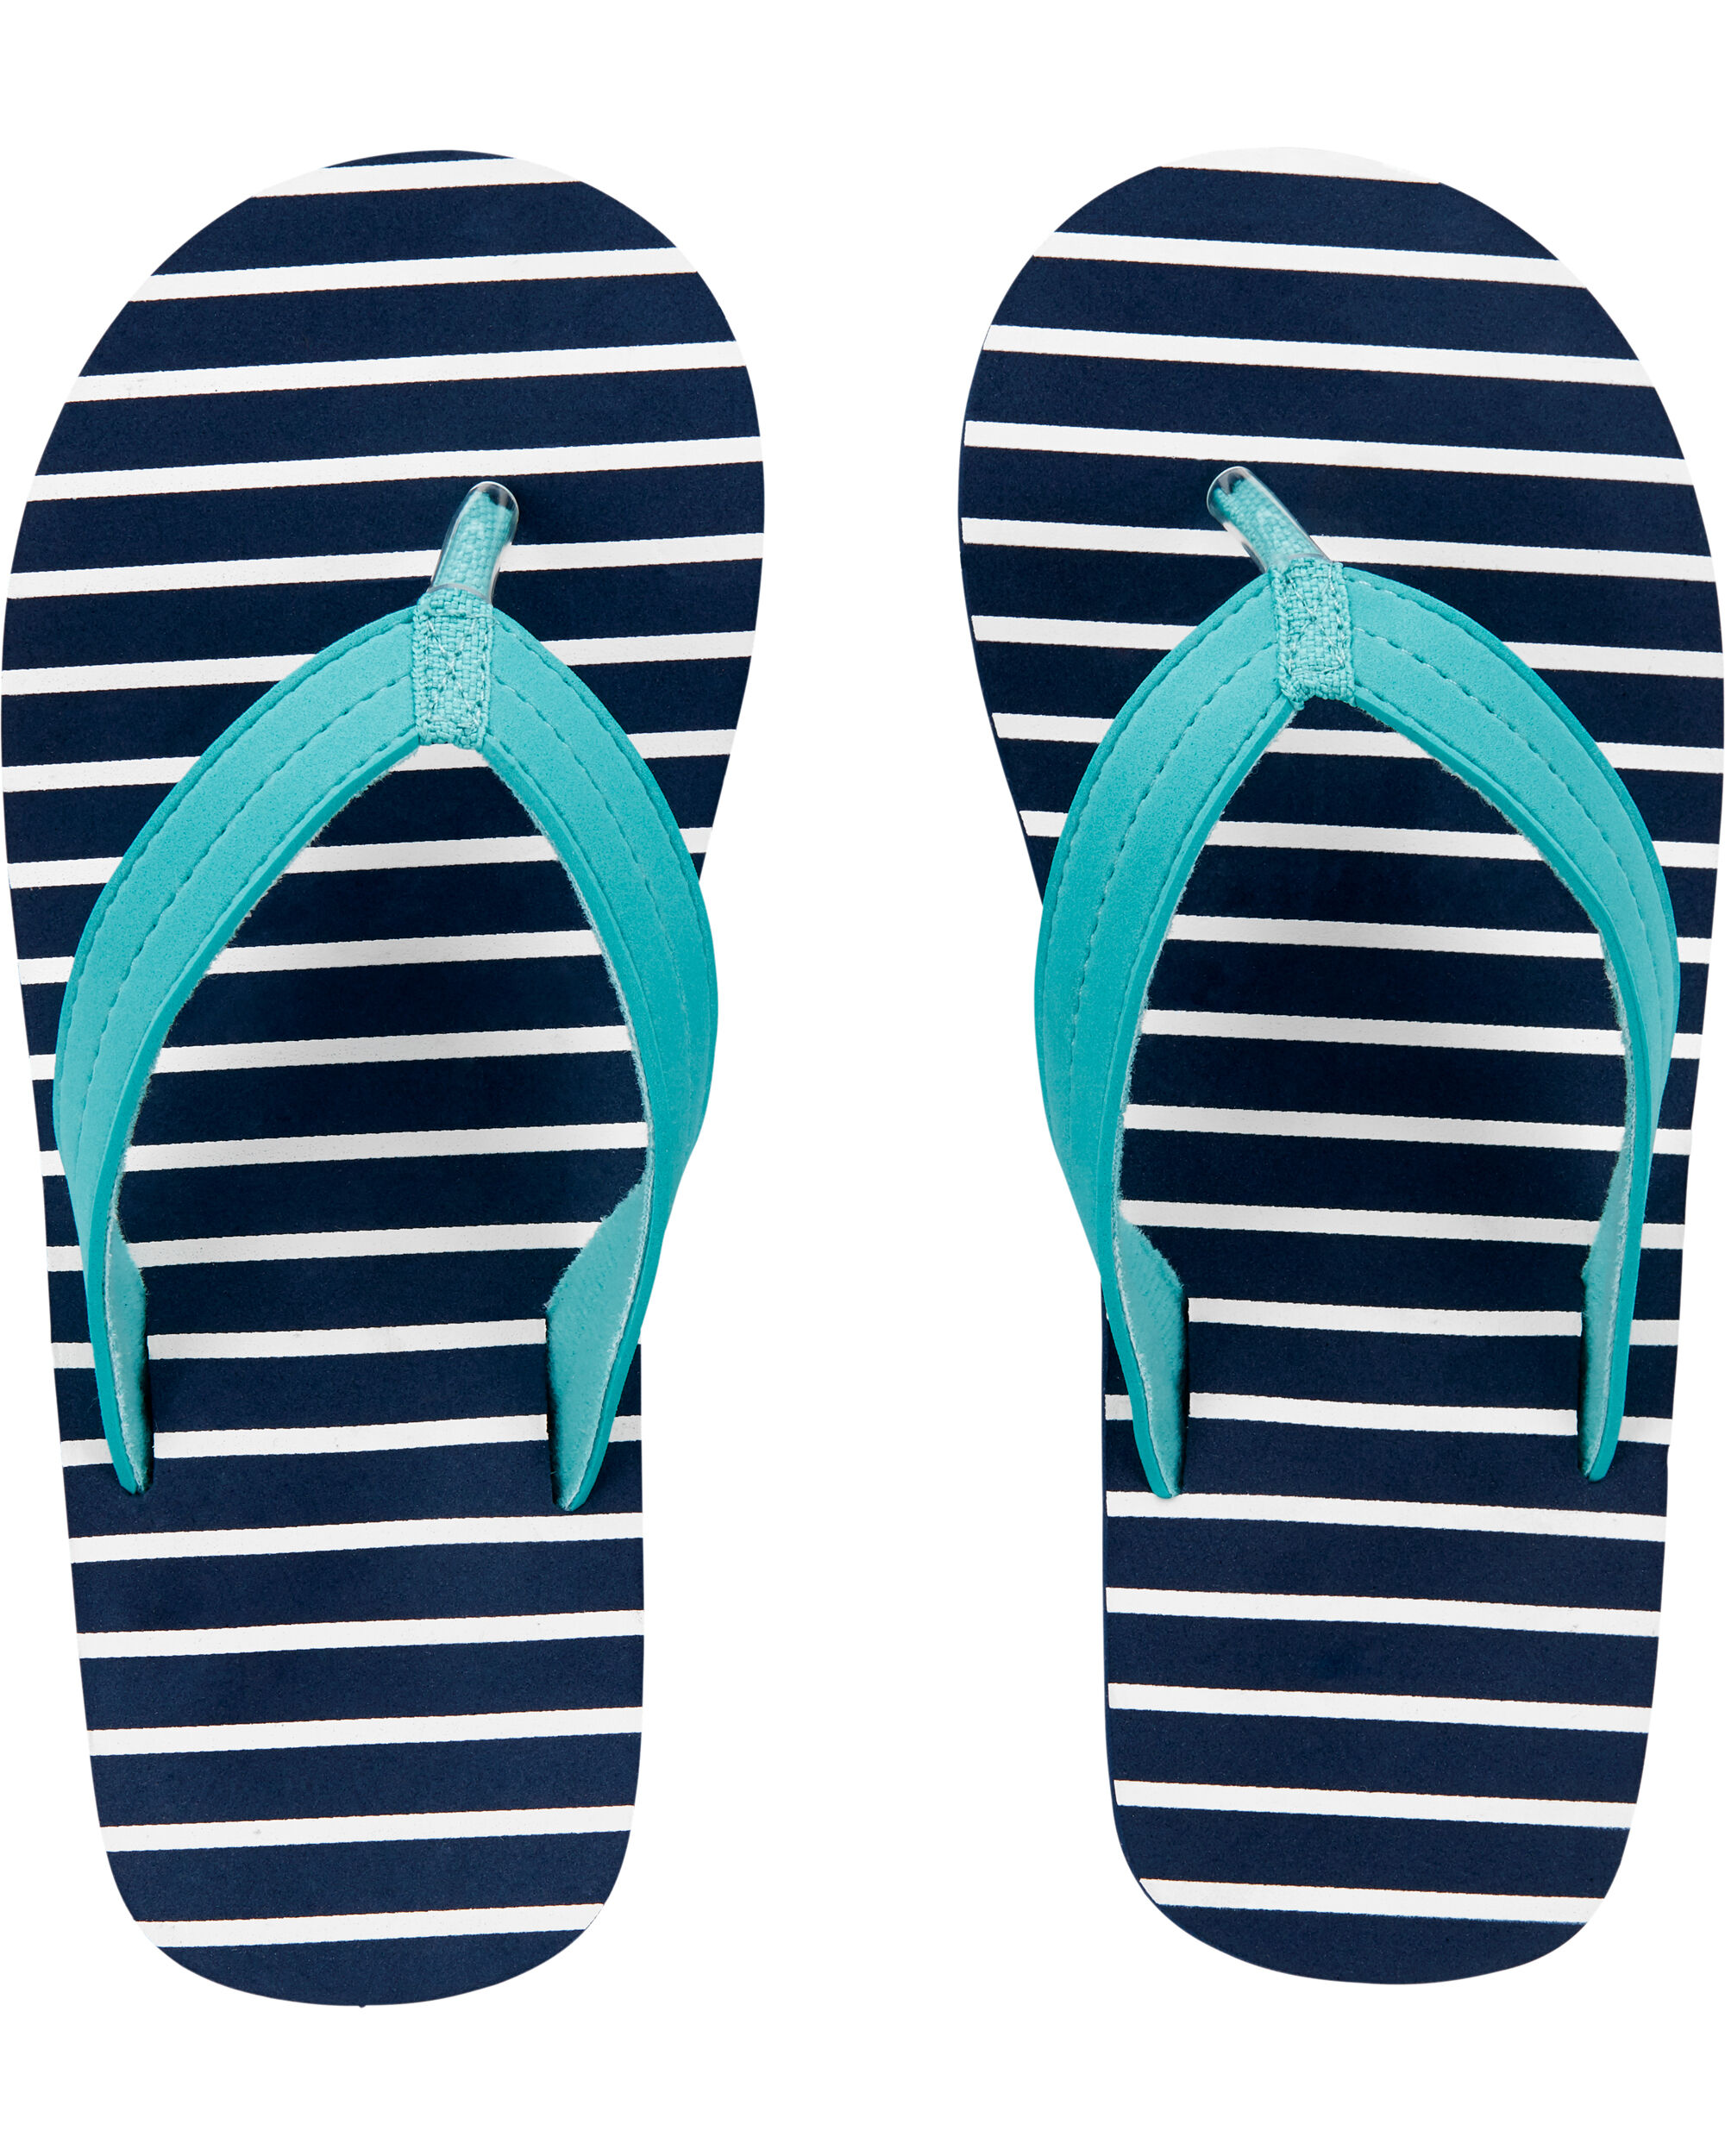 Oshkoshbgosh Carters Striped Flip Flops